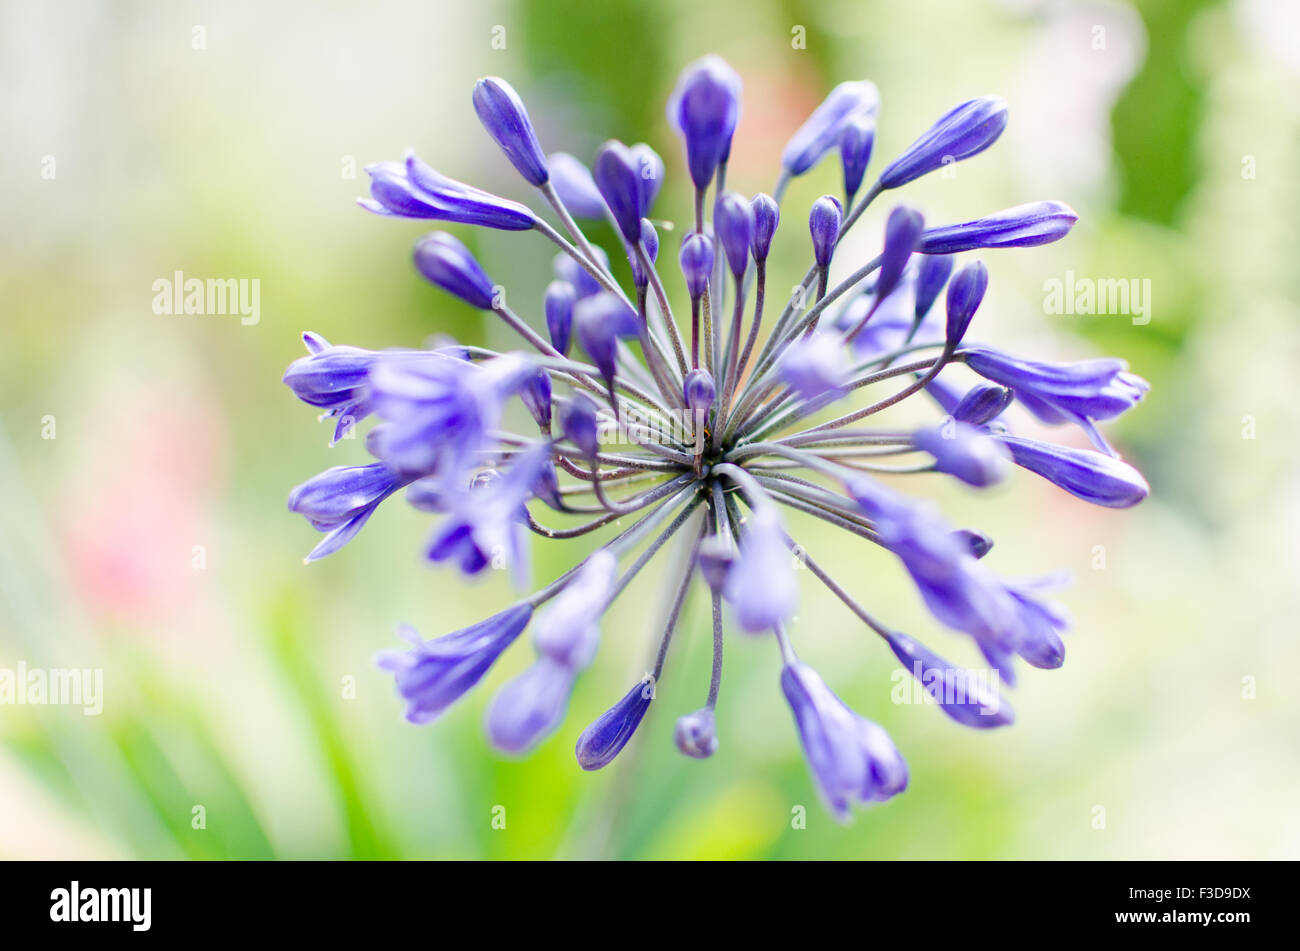 Purple Agapanthus on a blurry garden background - Stock Image